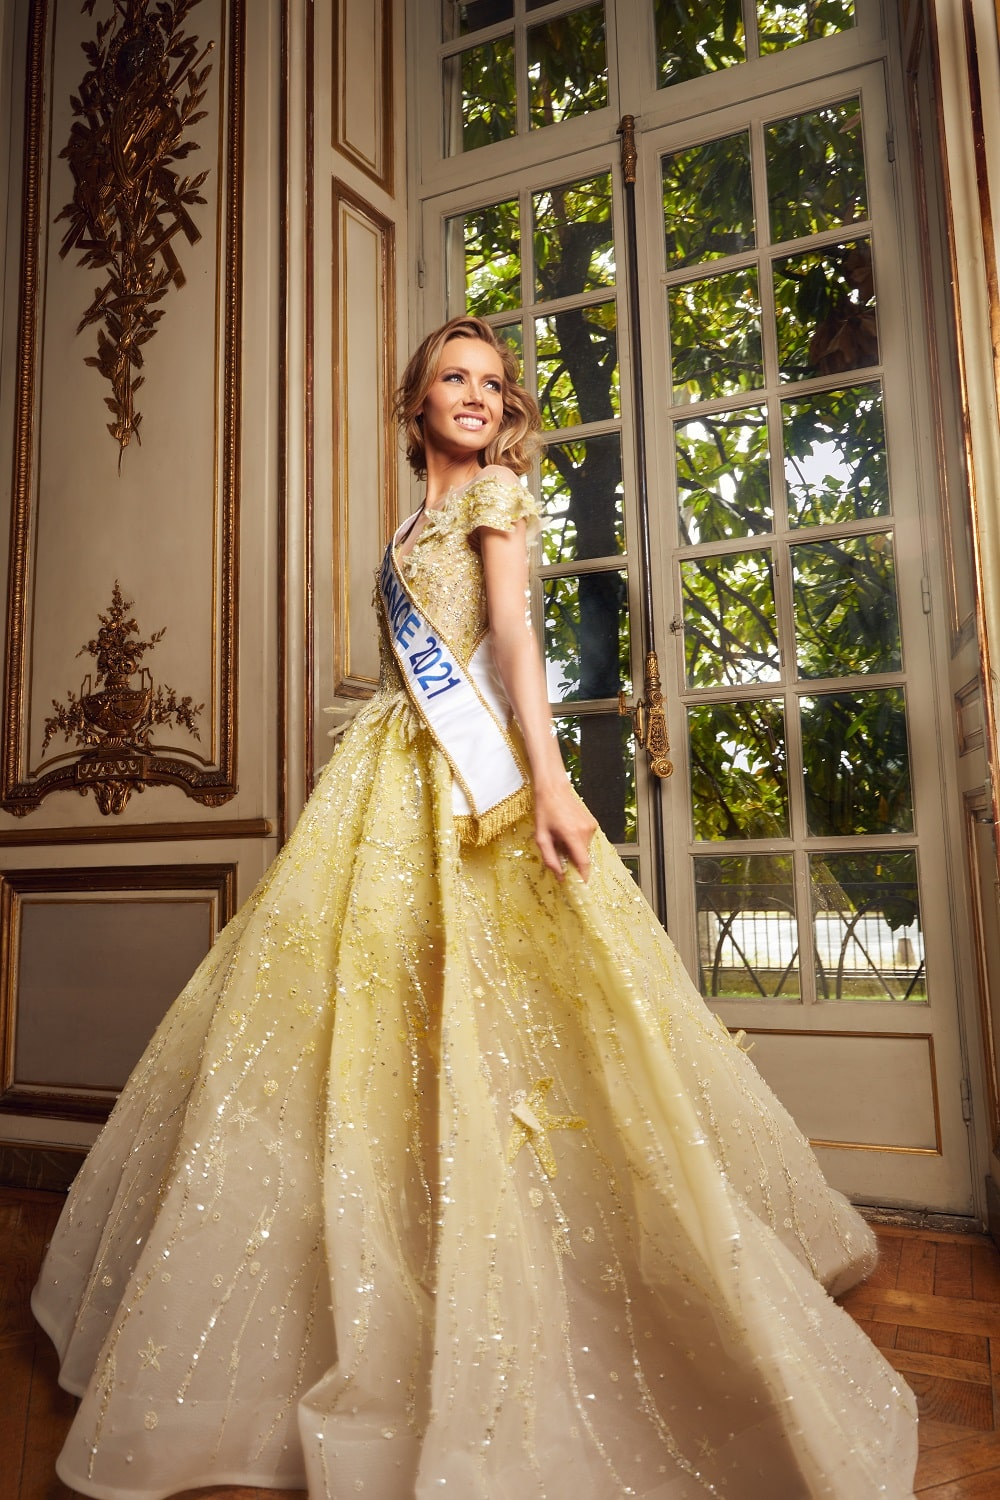 COUTURE DESIGNER ZIAD NAKAD DRESS AMANDINE PETIT, MISS FRANCE 2021 FOR THE FINAL OF MISS UNIVERSE 2020